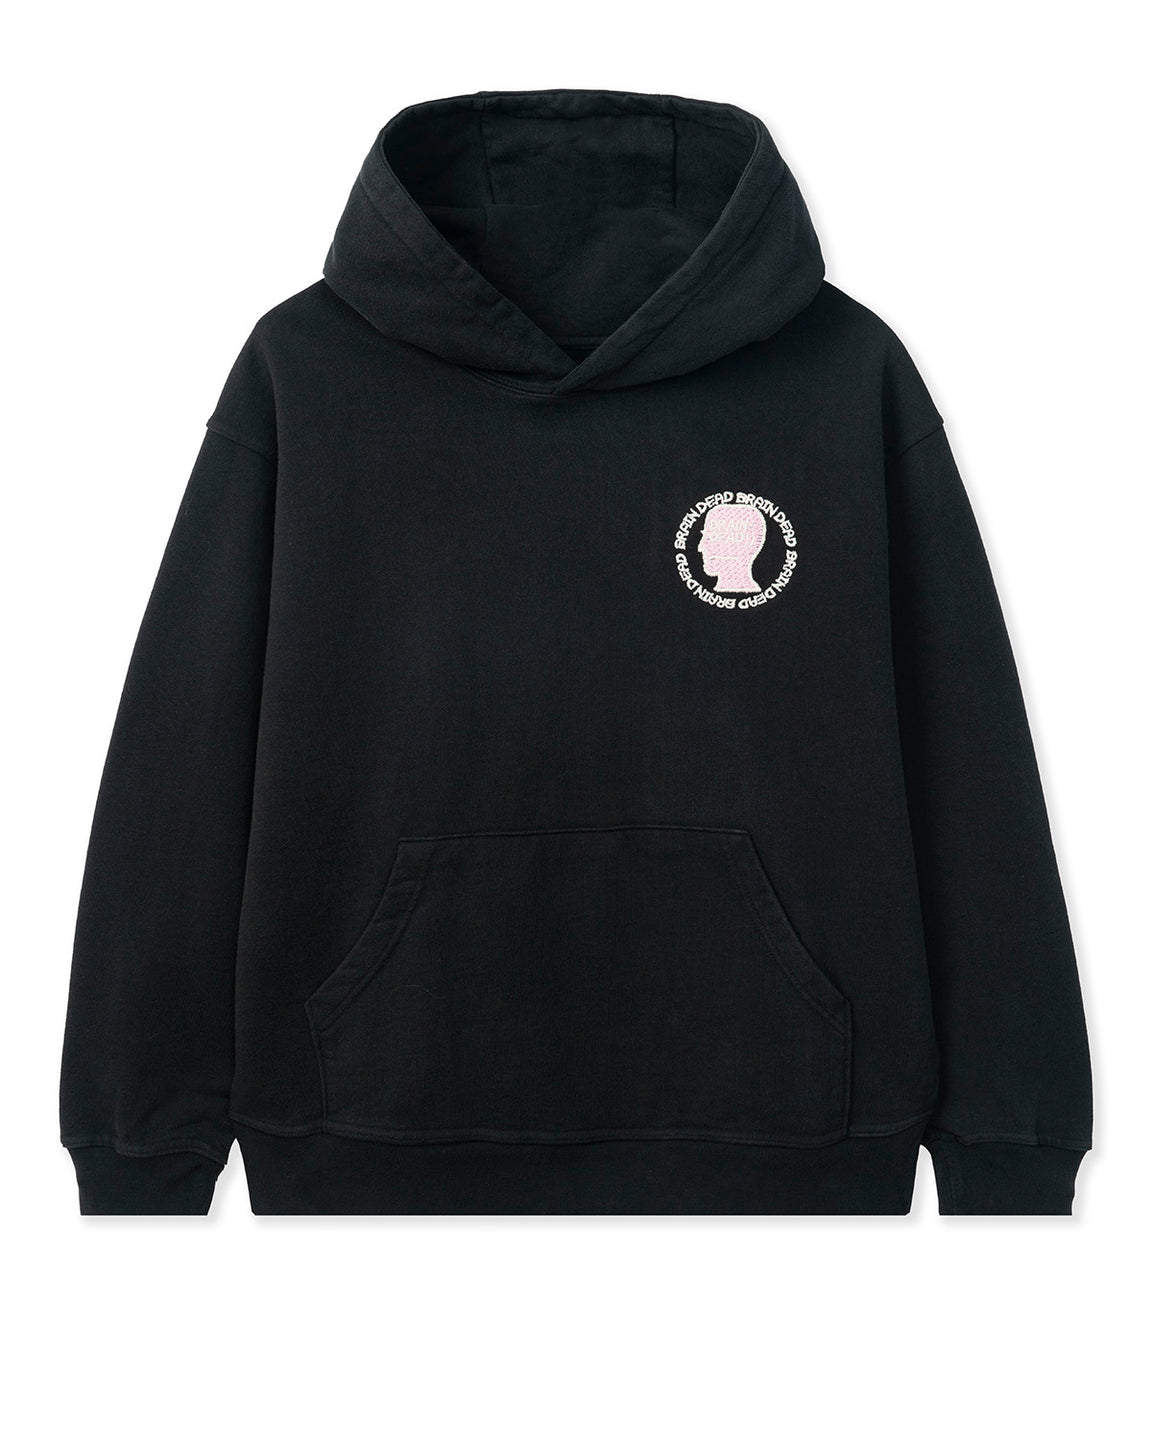 Speed Text Embroidered Logo Head Hooded Sweatshirt - Black